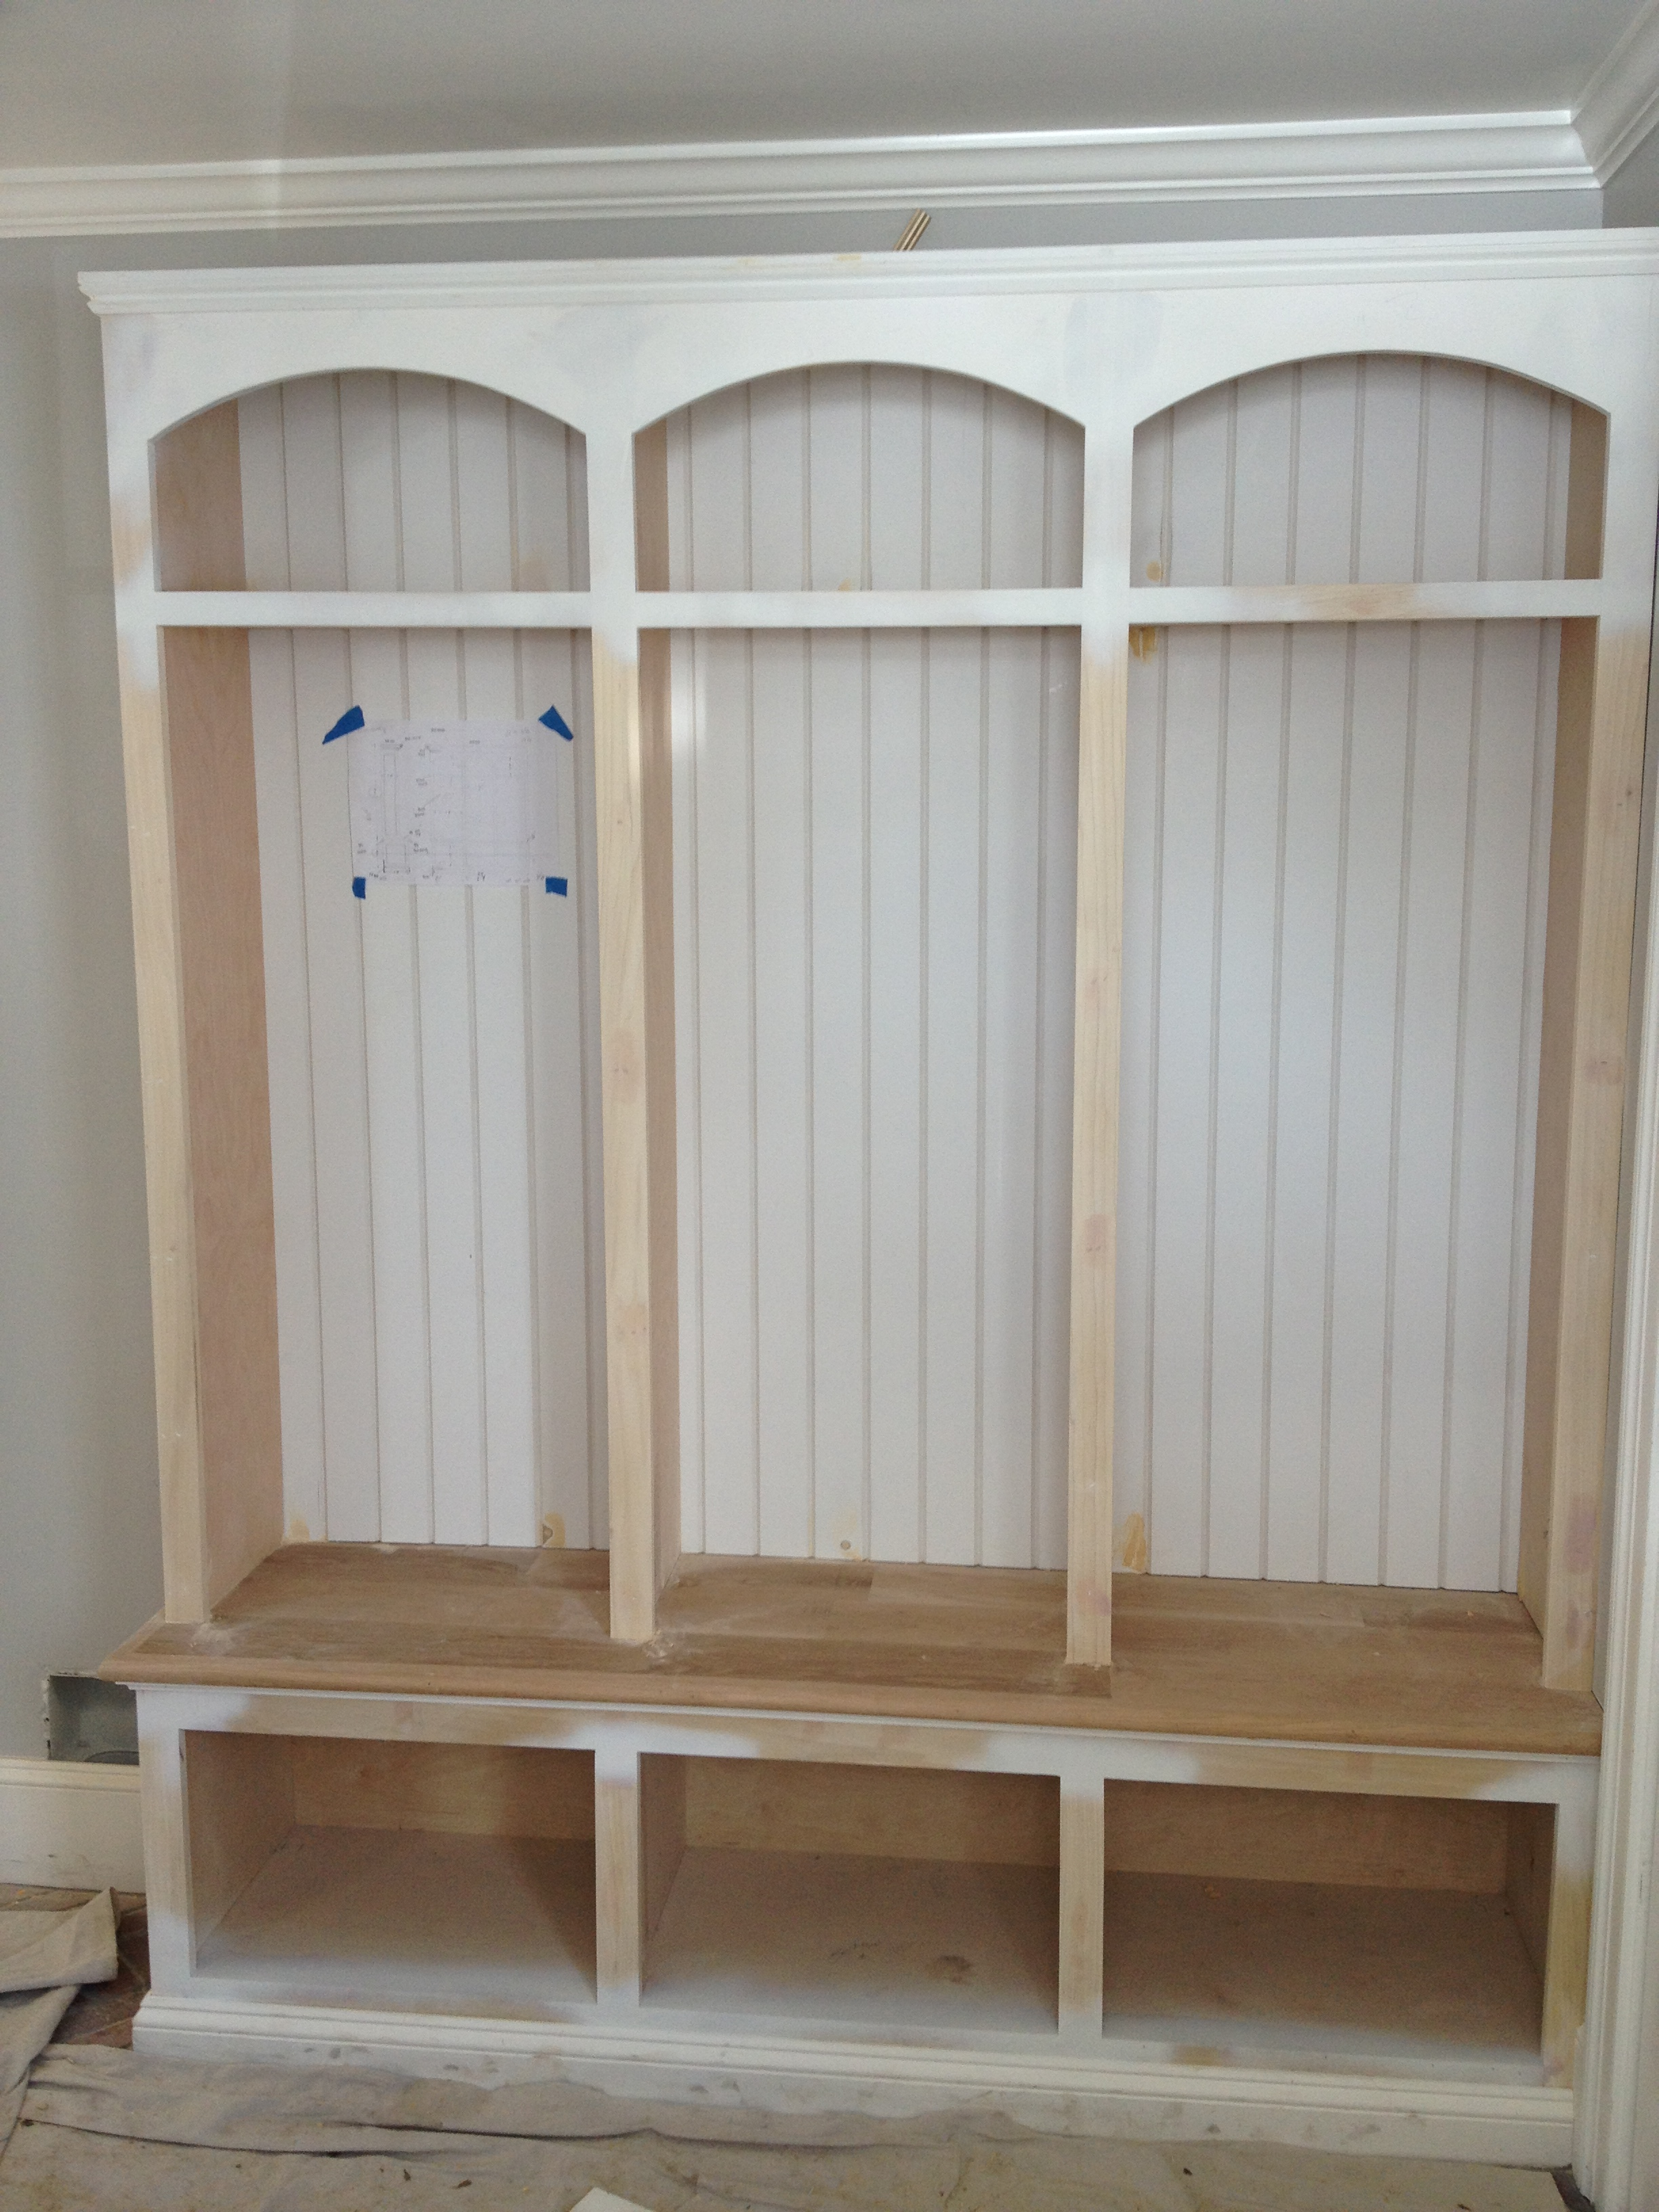 Mudroom cubbies ideas plans diy how to make nostalgic67ufr for House plans with mudroom